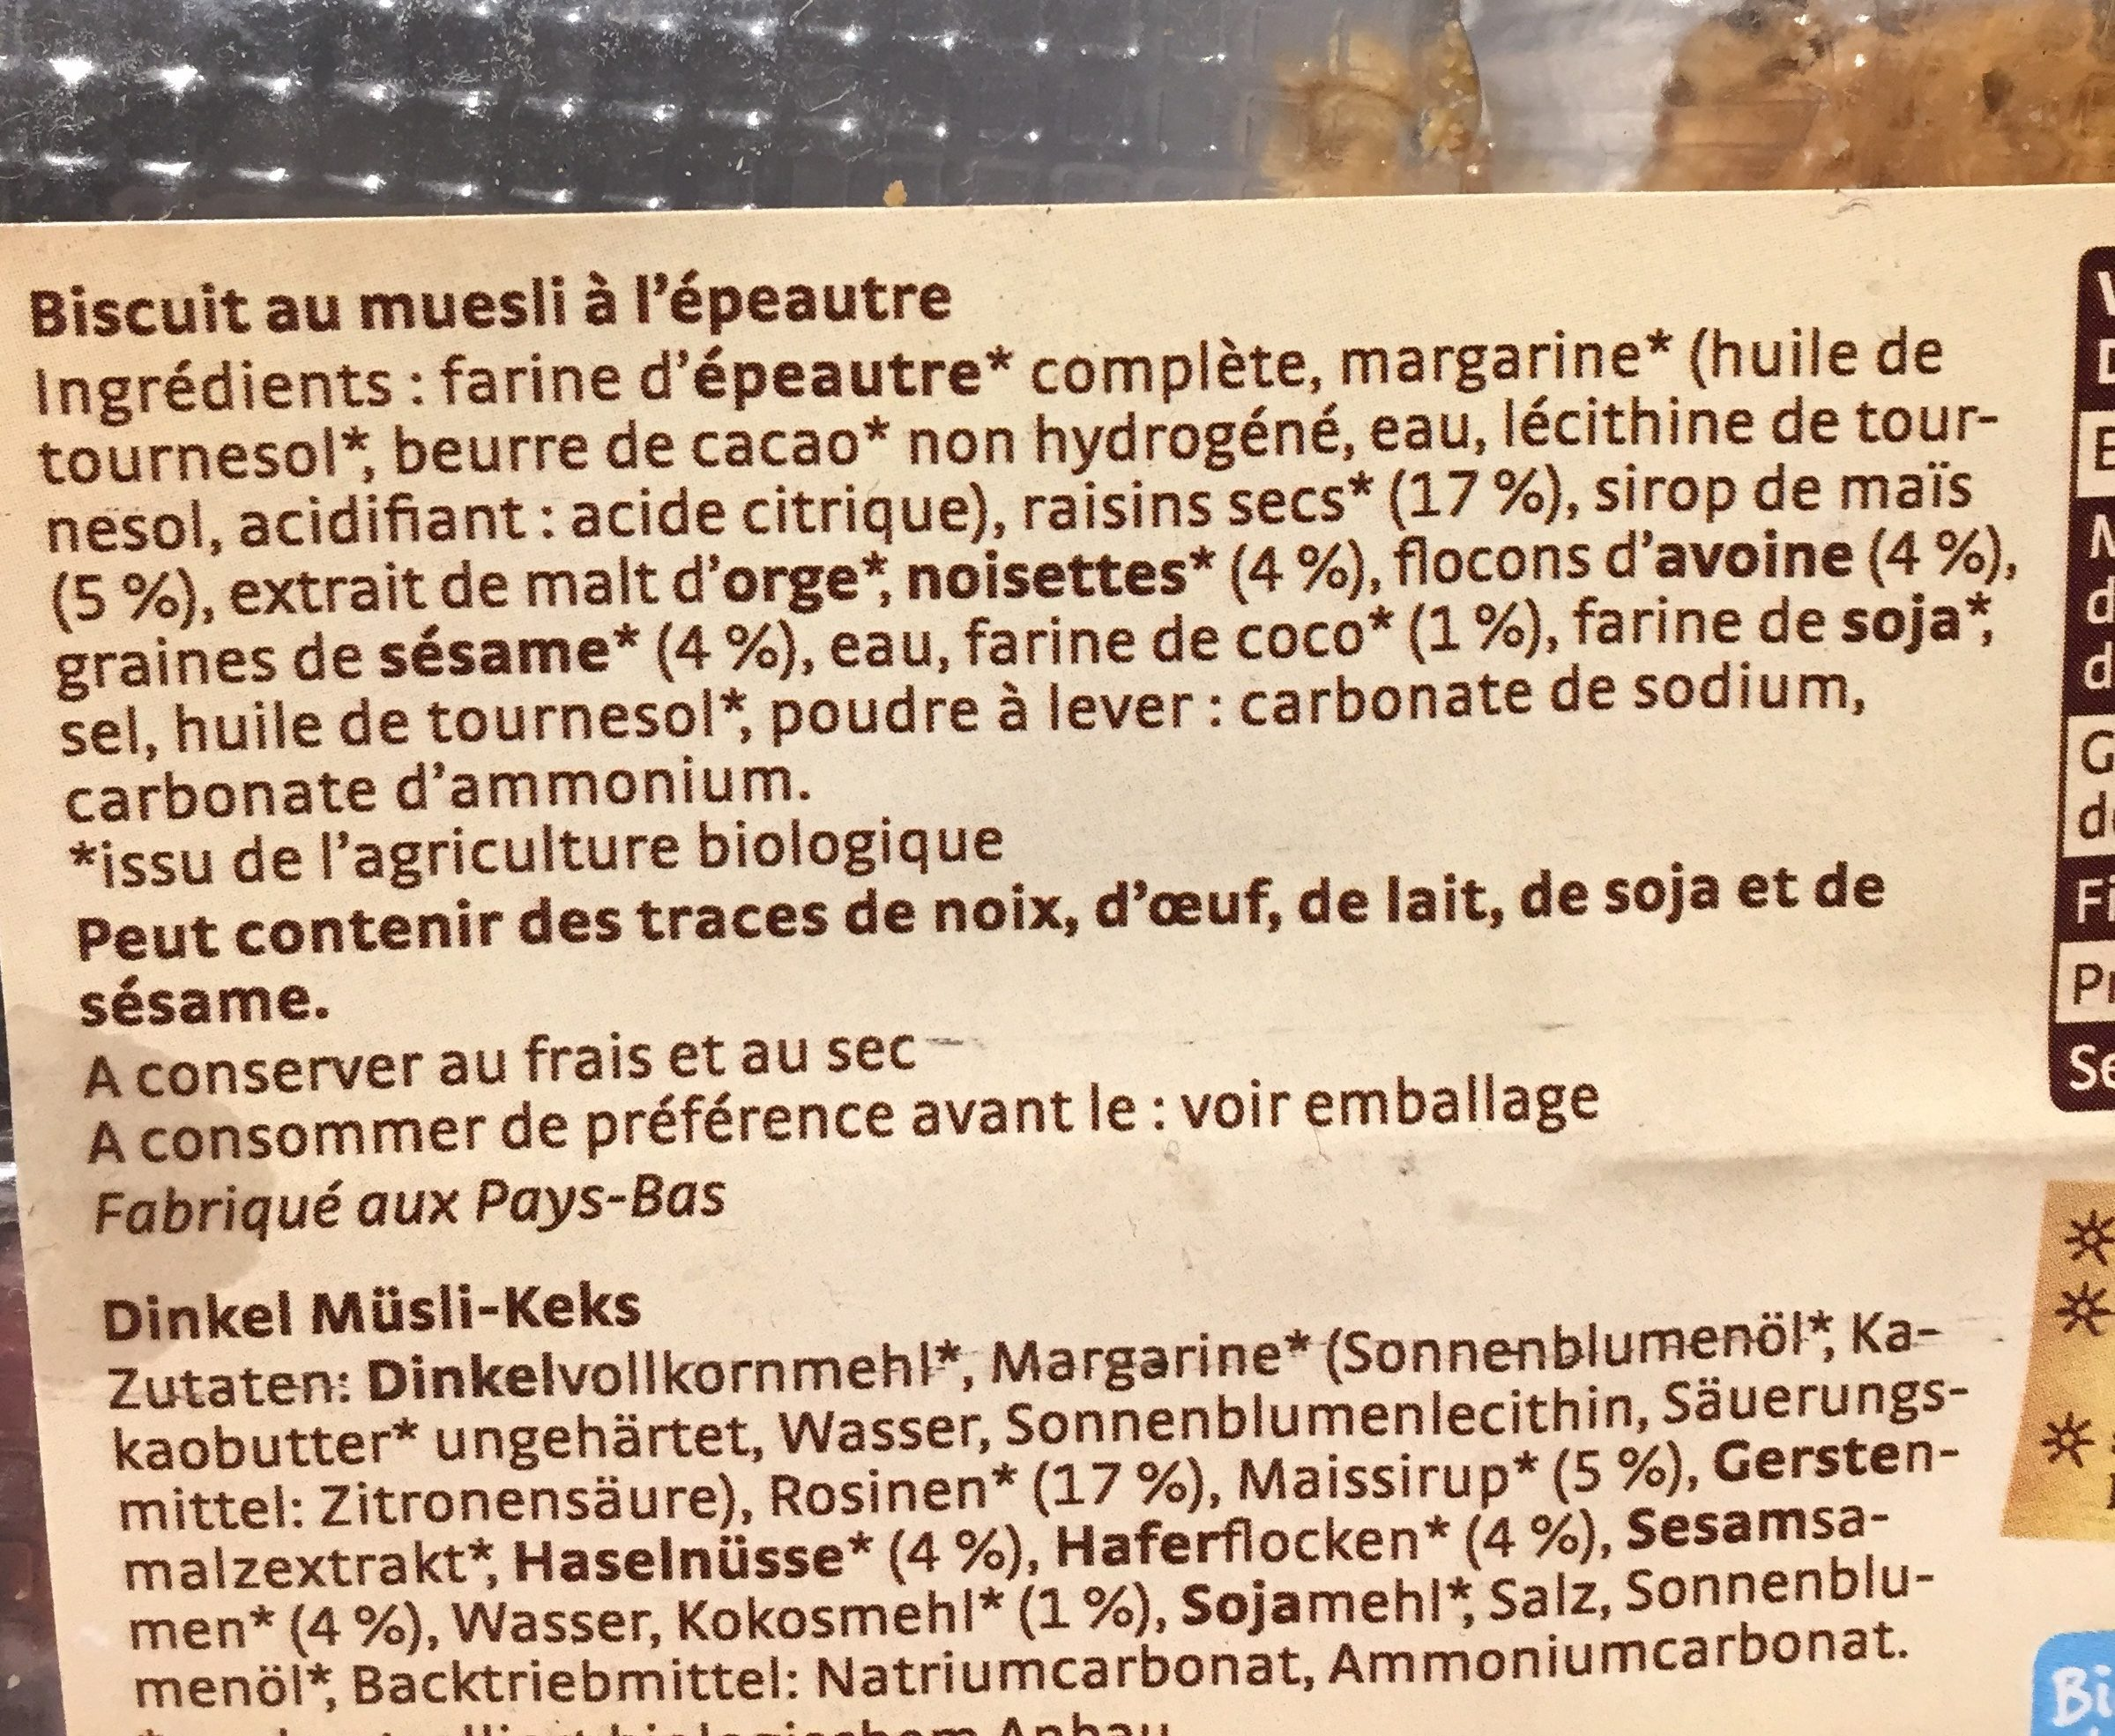 Bigscuits Epeautre Muesli 320G - Ingredients